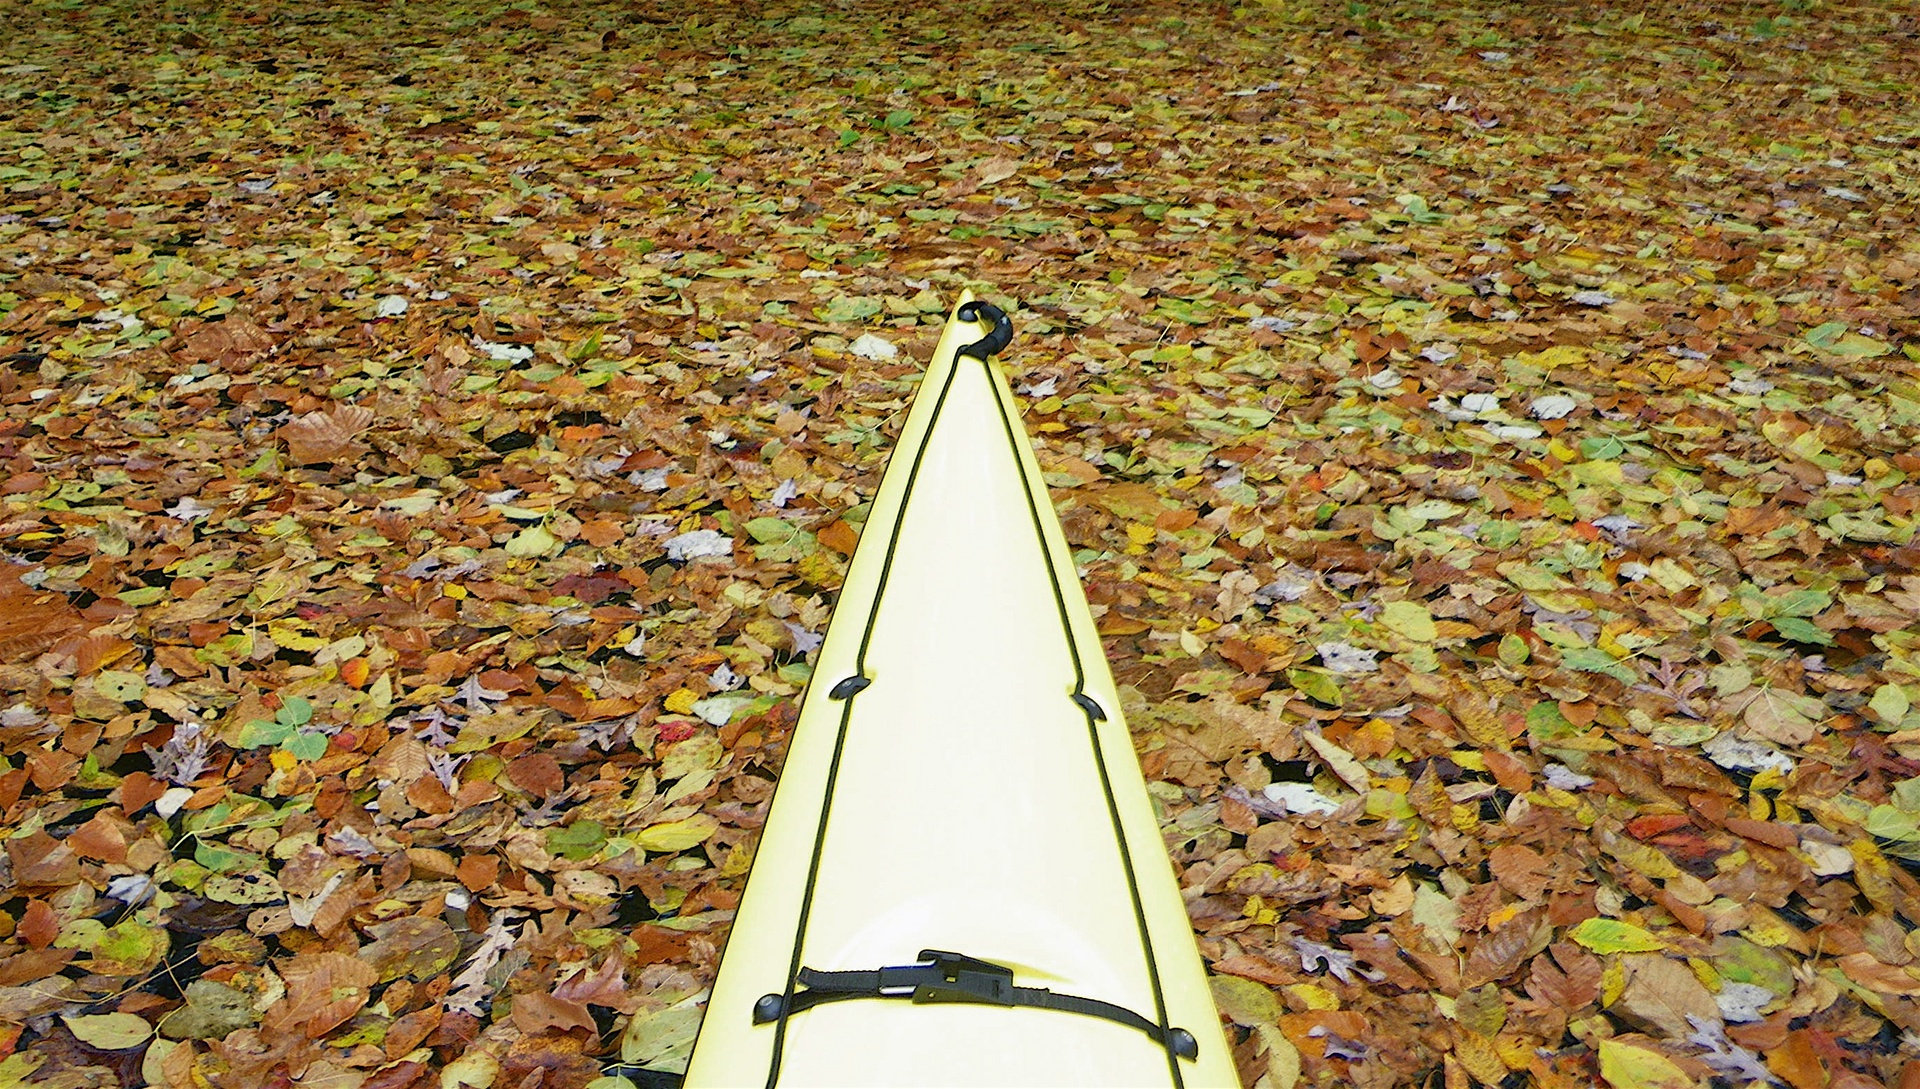 Paddling through leaves - Occoquan Creek